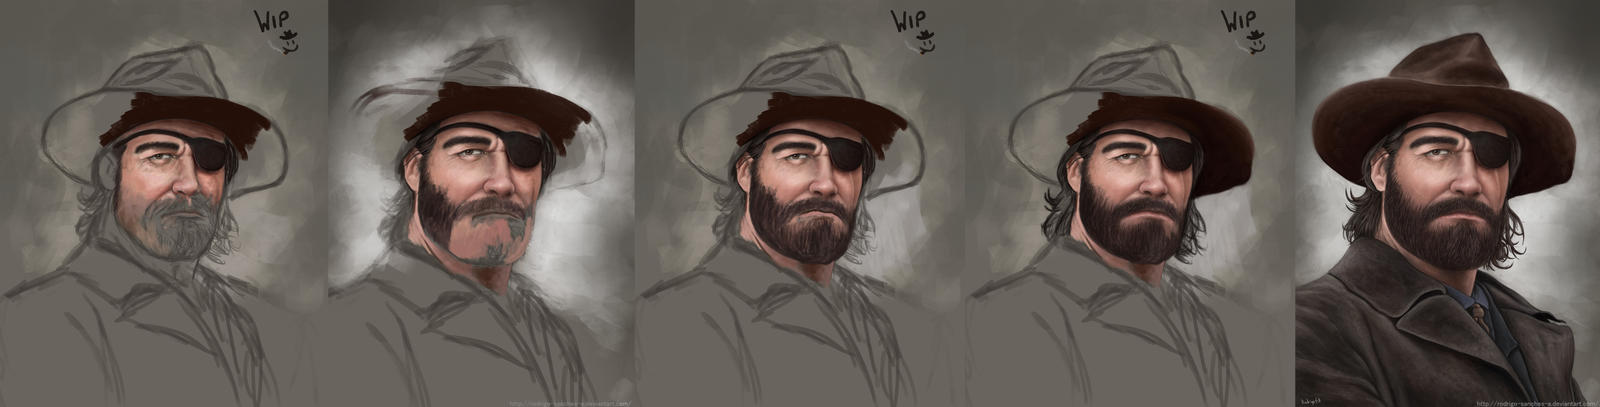 Cowboy Western : James Edwards WIP by Rodrigo-Sanches-A